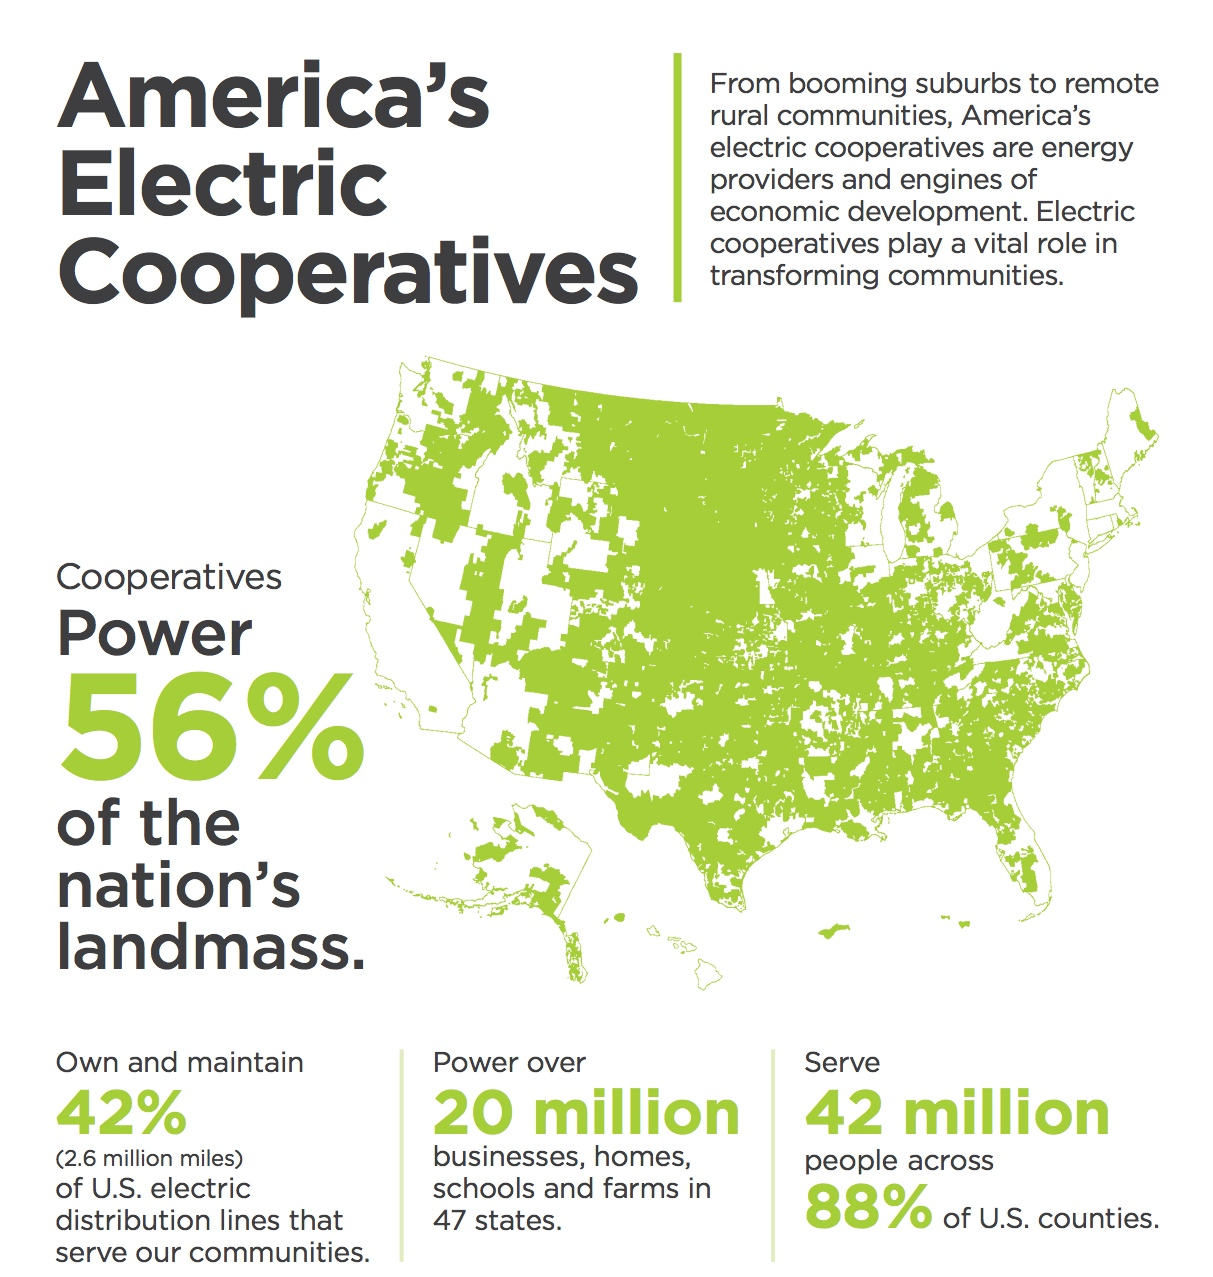 A map of the U.S. showing 56 percent of land area is served by electric cooperatives, making up 42 percent of distribution lines and serving 88 percent of U.S. counties.